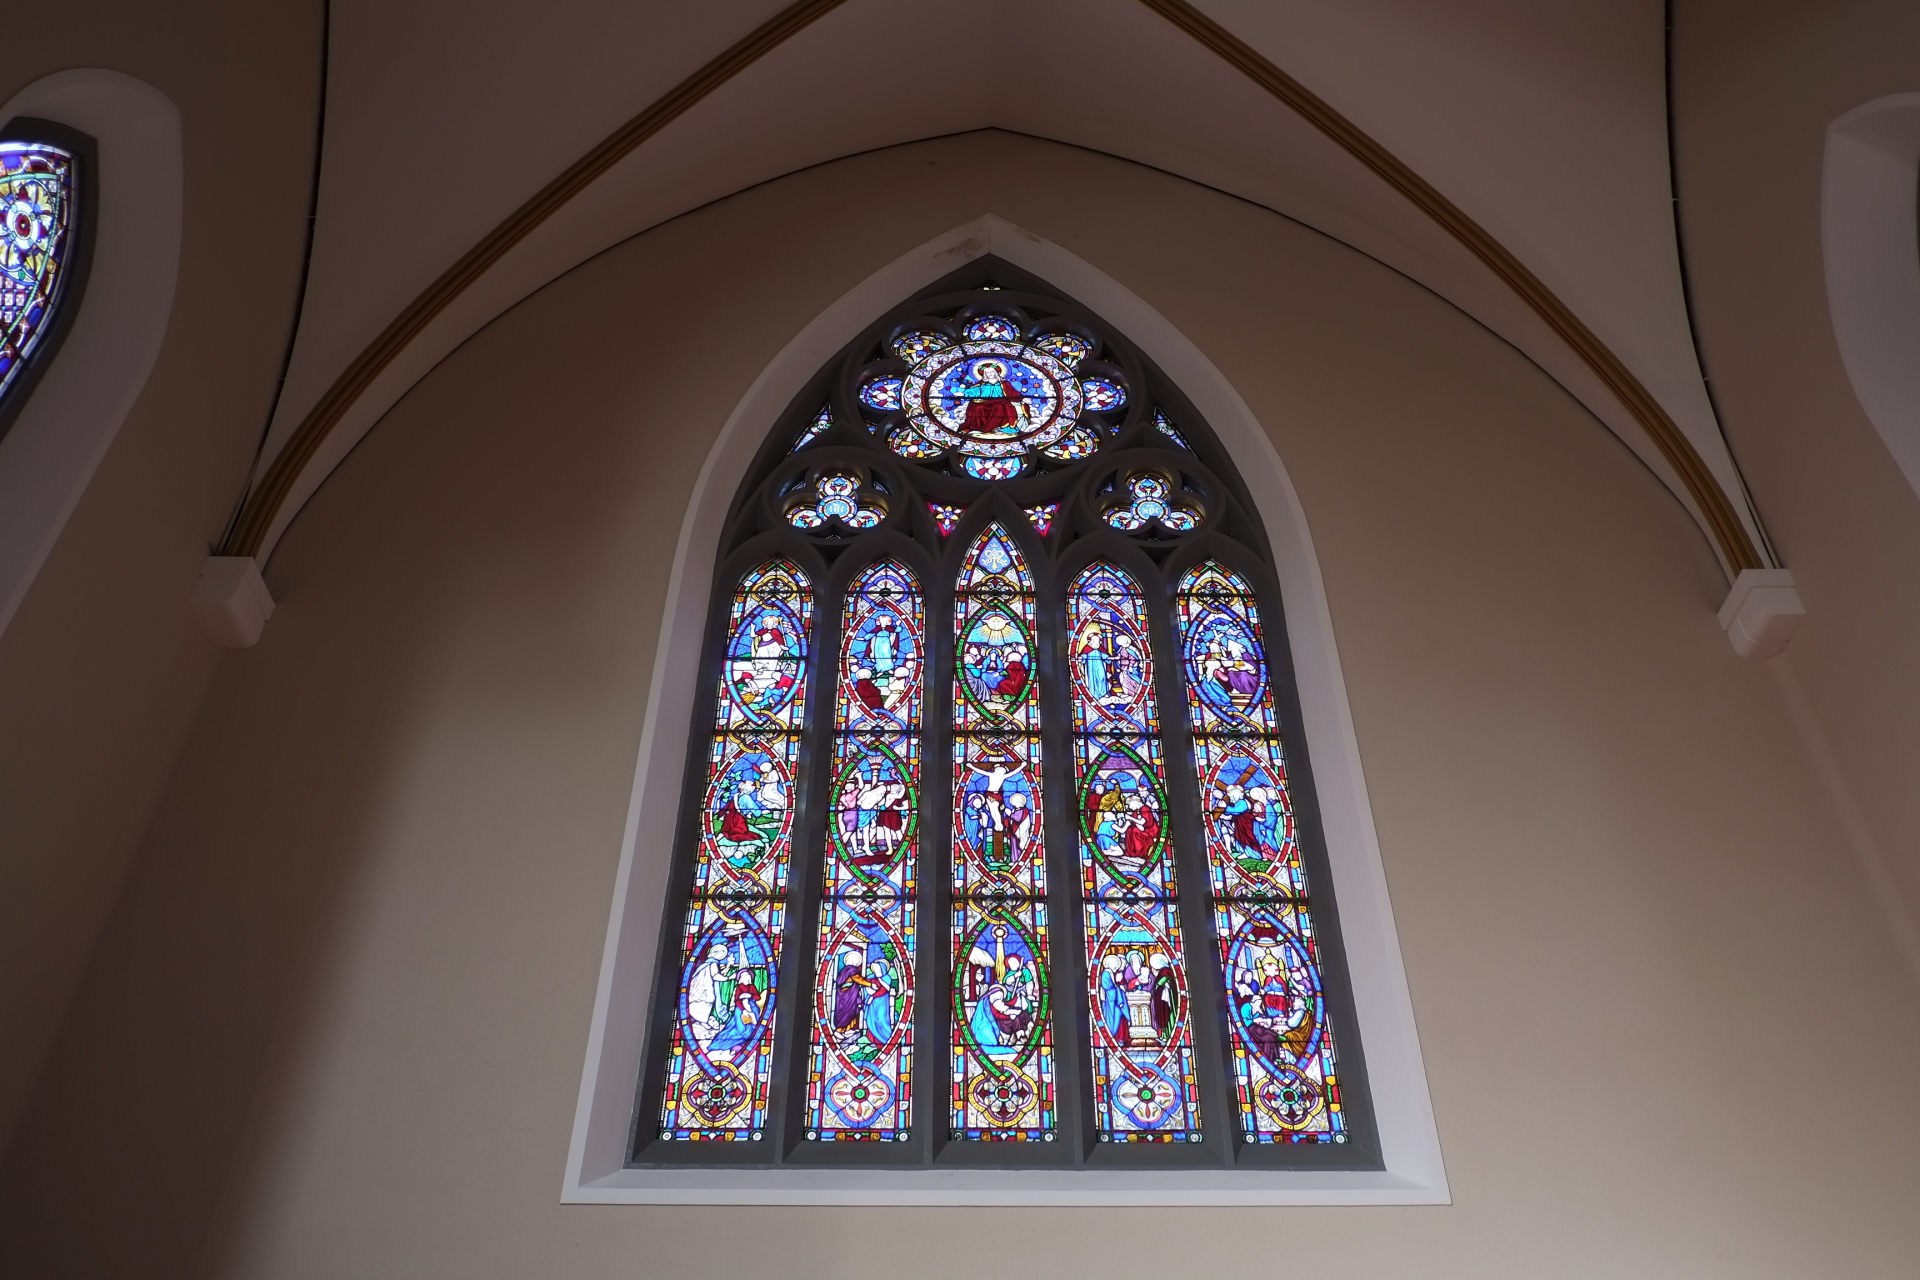 The rosary window